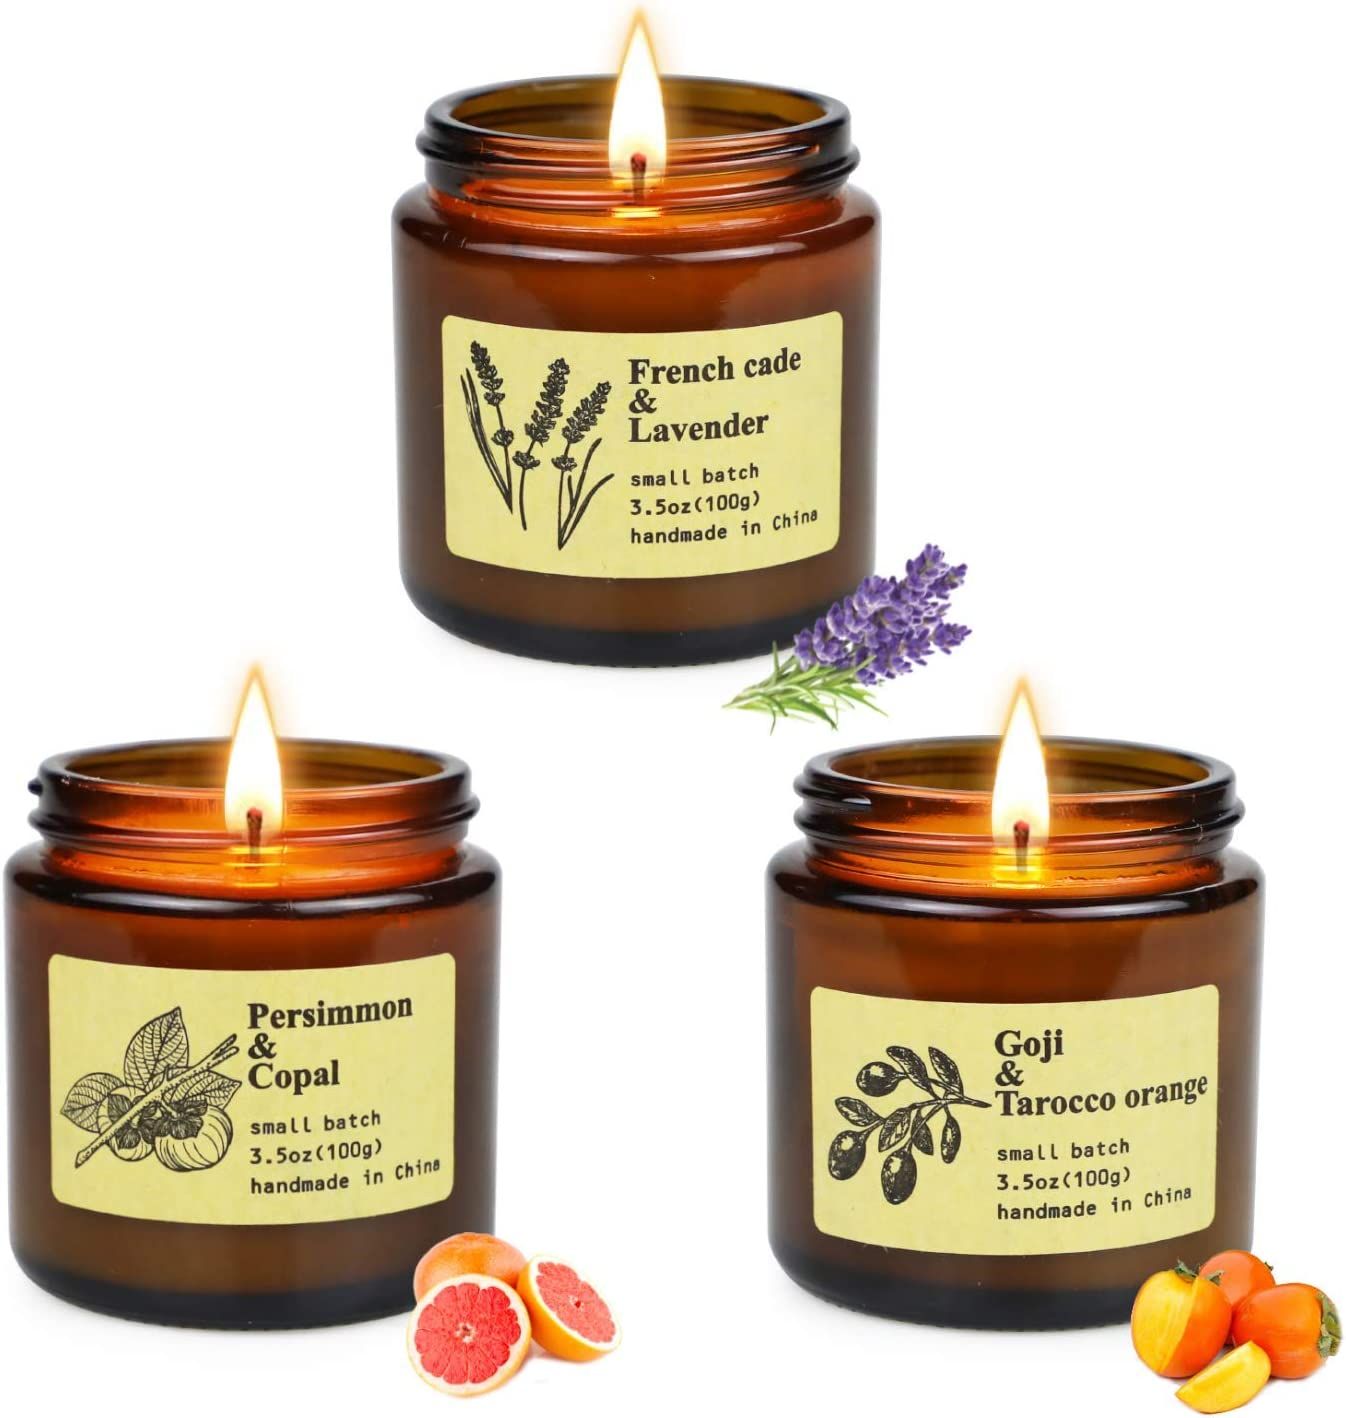 Scented Candles Gifts for Women Natural Soy Wax Essentail Oil Relaxing Home Decoration for Christmas Mothers Day Two Candle Gift Sets-Amber Set /& Classic Set Thanksgiving Day Halloween 7 Packs